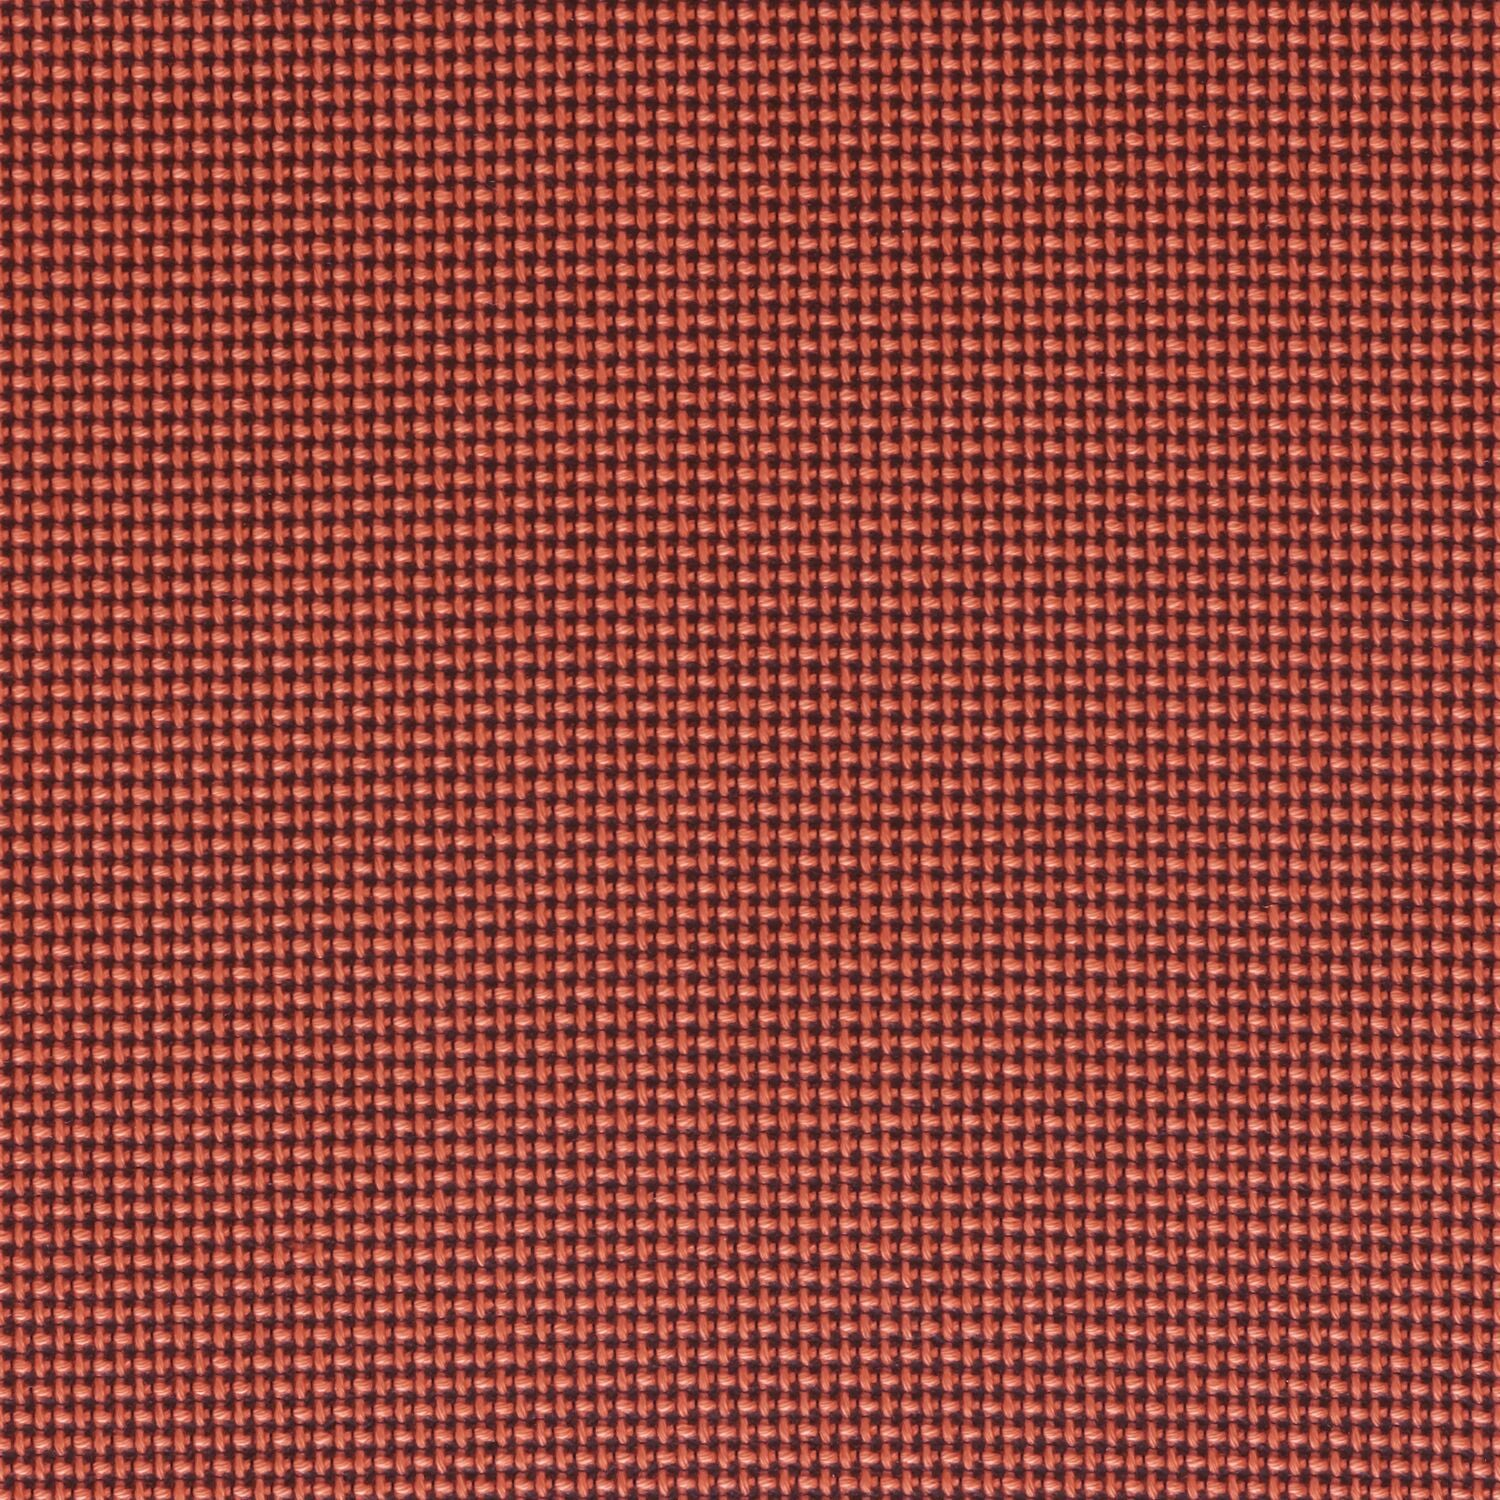 Color Fuse - Molten - 4070 - 07 - Half Yard